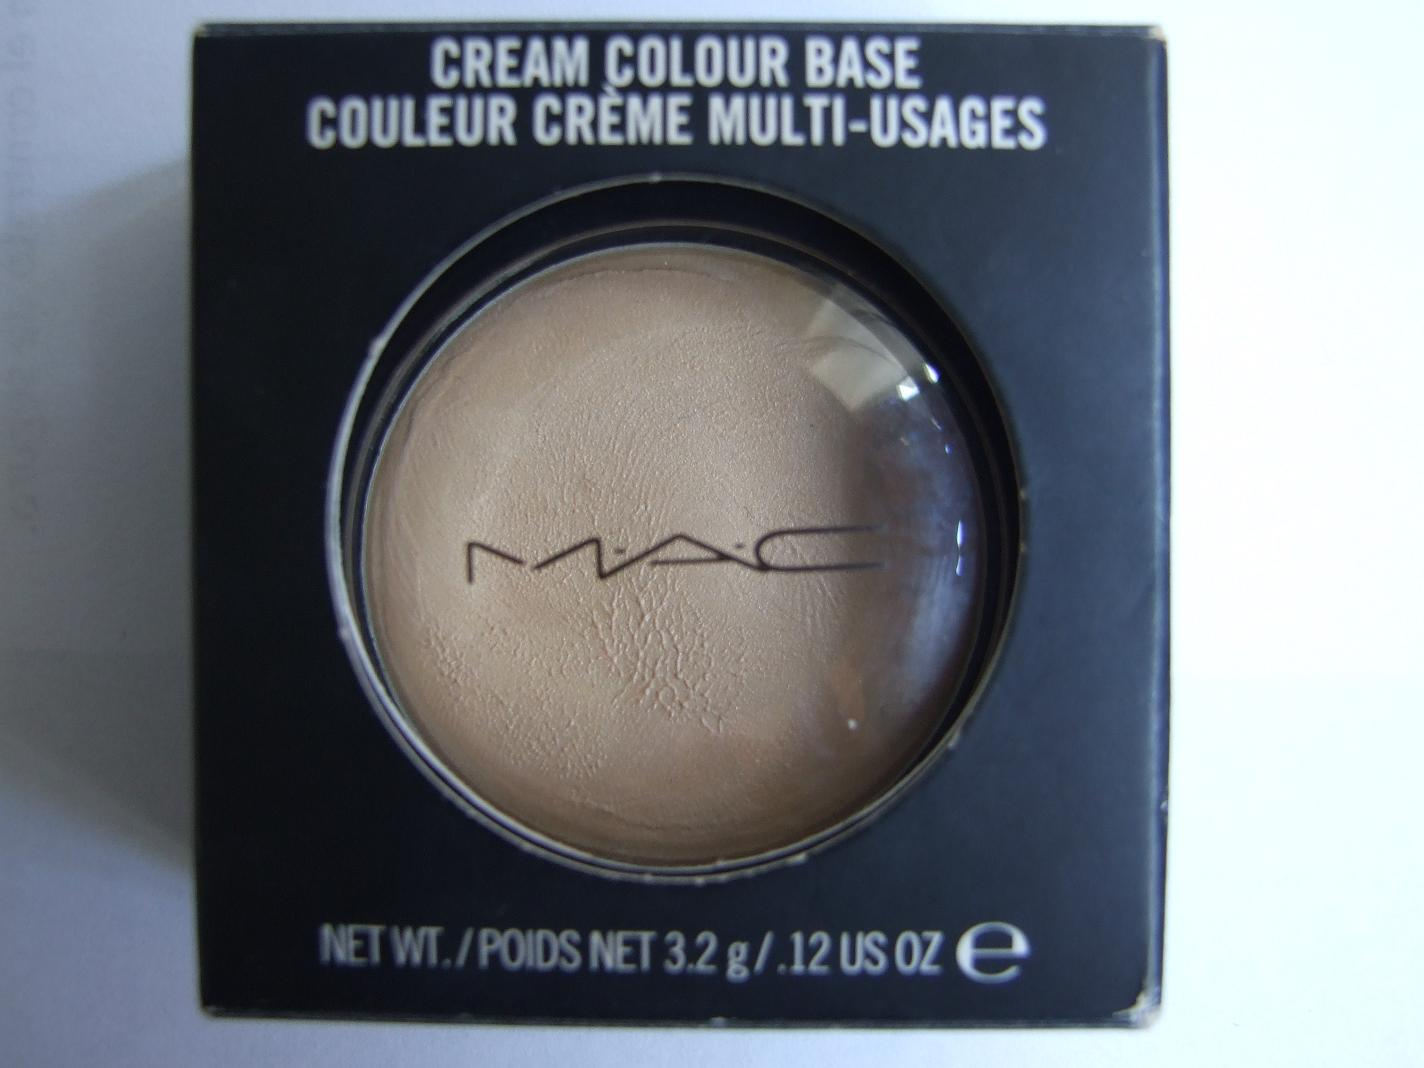 Iluminadores Mac Mac Pearl Cream Color Base Mispolkadots